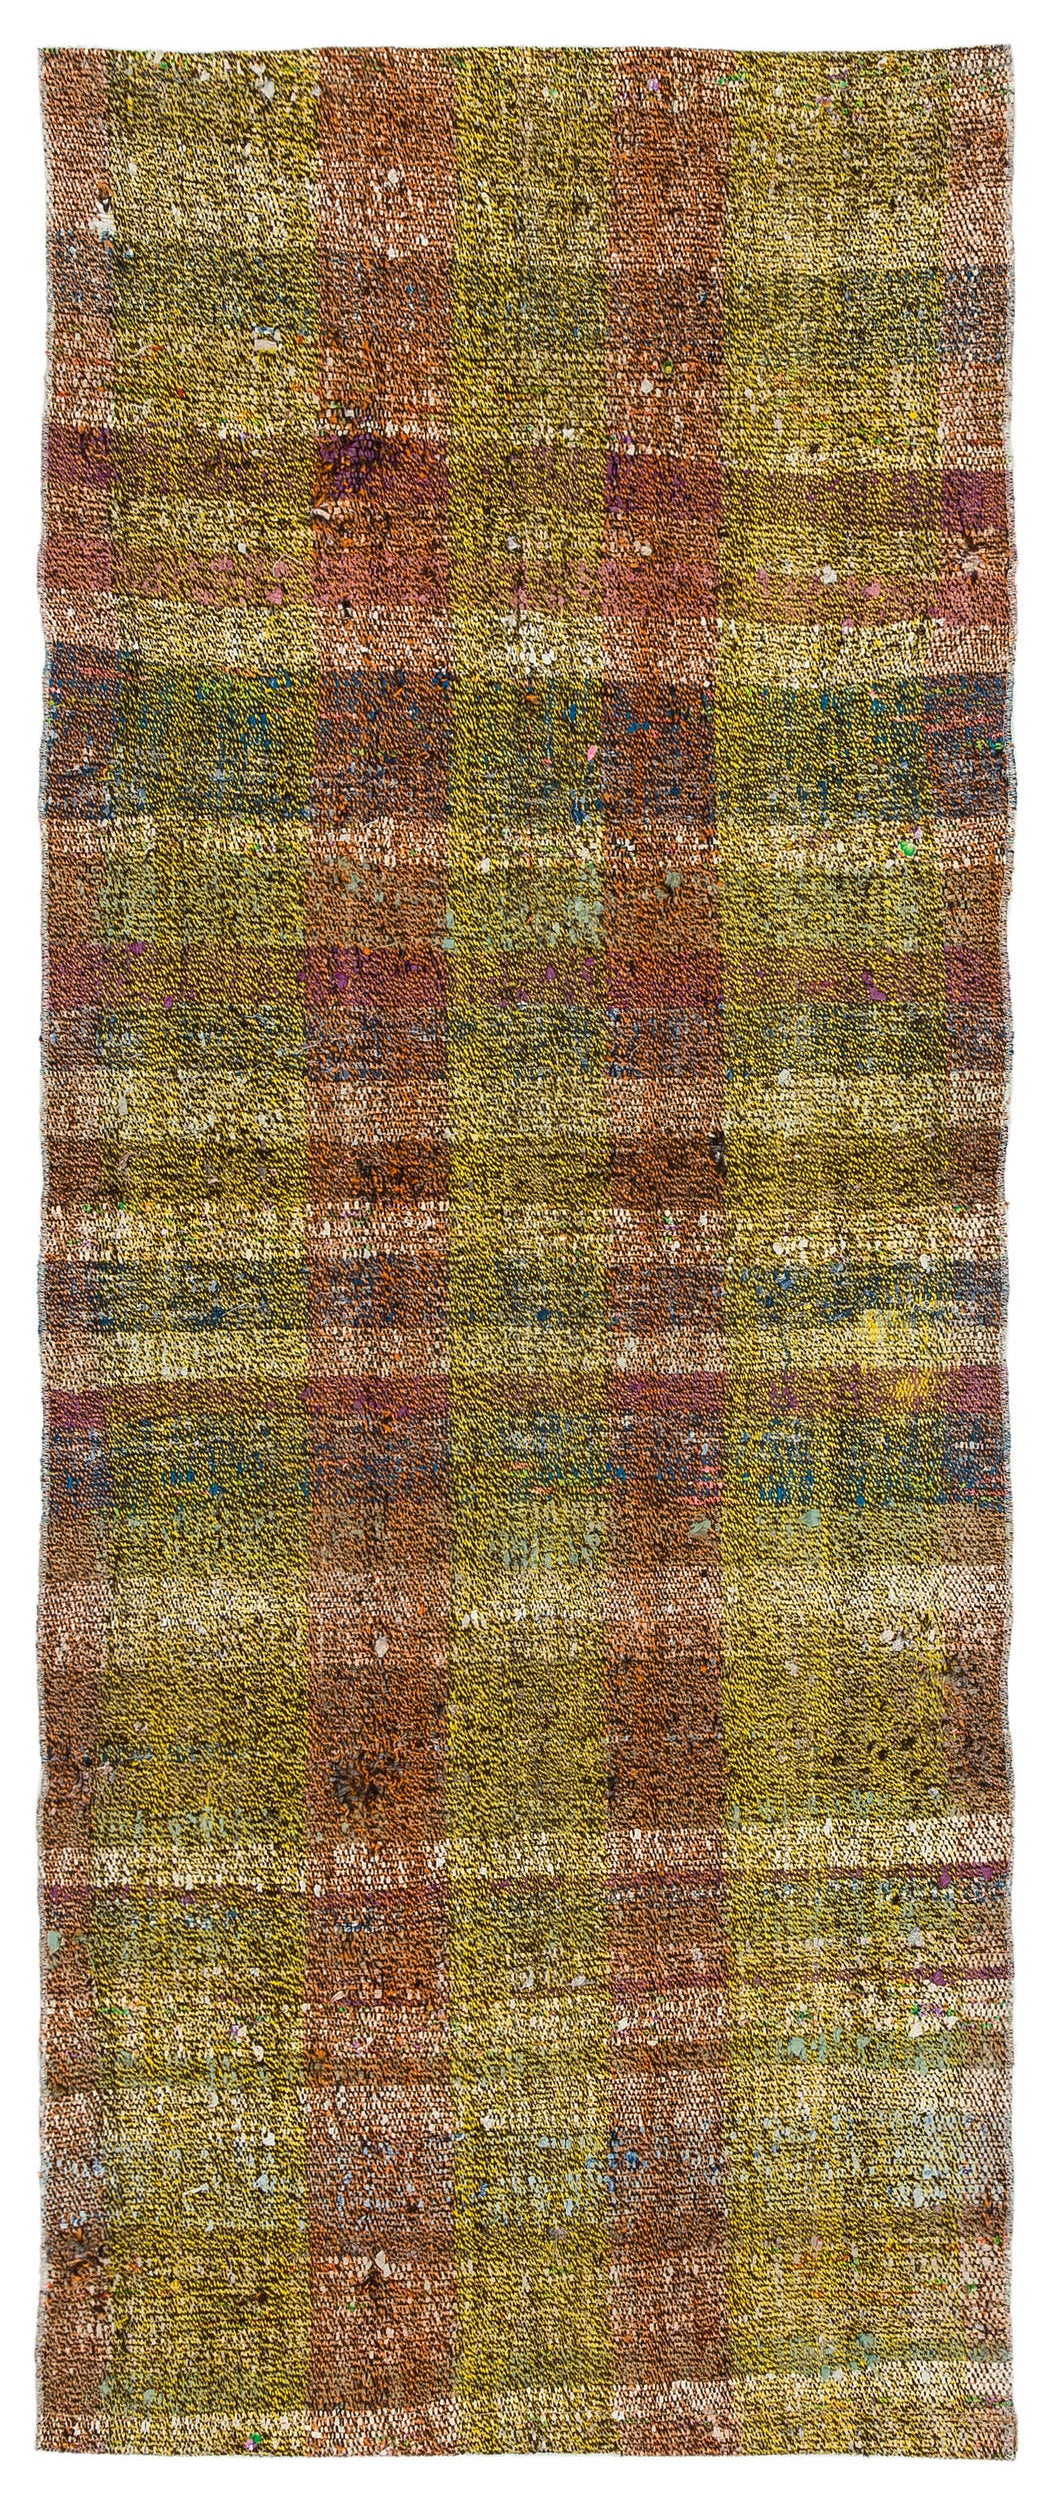 Chaput Over Dyed Kilim Rug 2'7'' x 6'3'' ft 78 x 190 cm